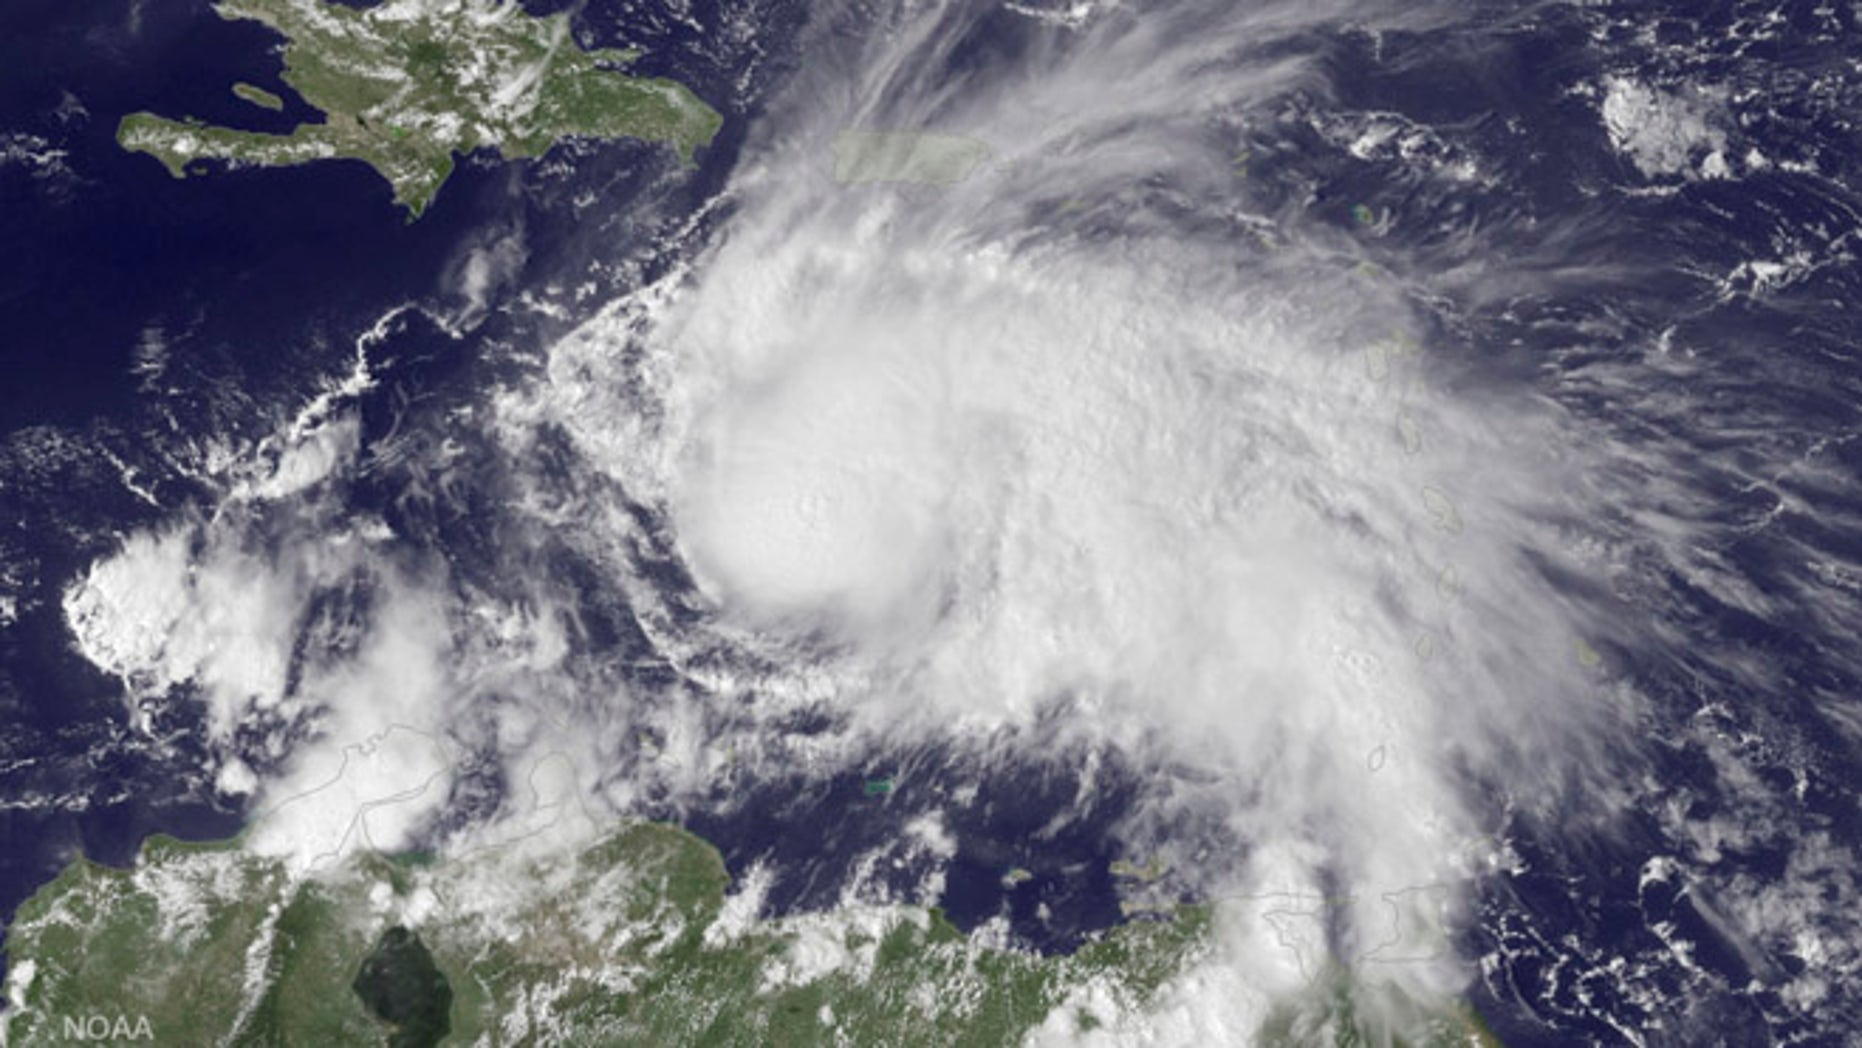 The GOES East satellite image provided by the National Oceanic and Atmospheric Administration (NOAA) on Thursday, Sept. 29, 2016 at 2:45 p.m. EDT, shows Hurricane Matthew in the Caribbean Sea about 190 miles northeast of Curacao. Matthew, one of the most powerful Atlantic hurricanes in recent history, weakened a little on Saturday, Oct. 1, 2016, as it drenched coastal Colombia and roared across the Caribbean on a course that still puts Jamaica, Haiti and Cuba in the path of potentially devastating winds and rain. (NOAA via AP)